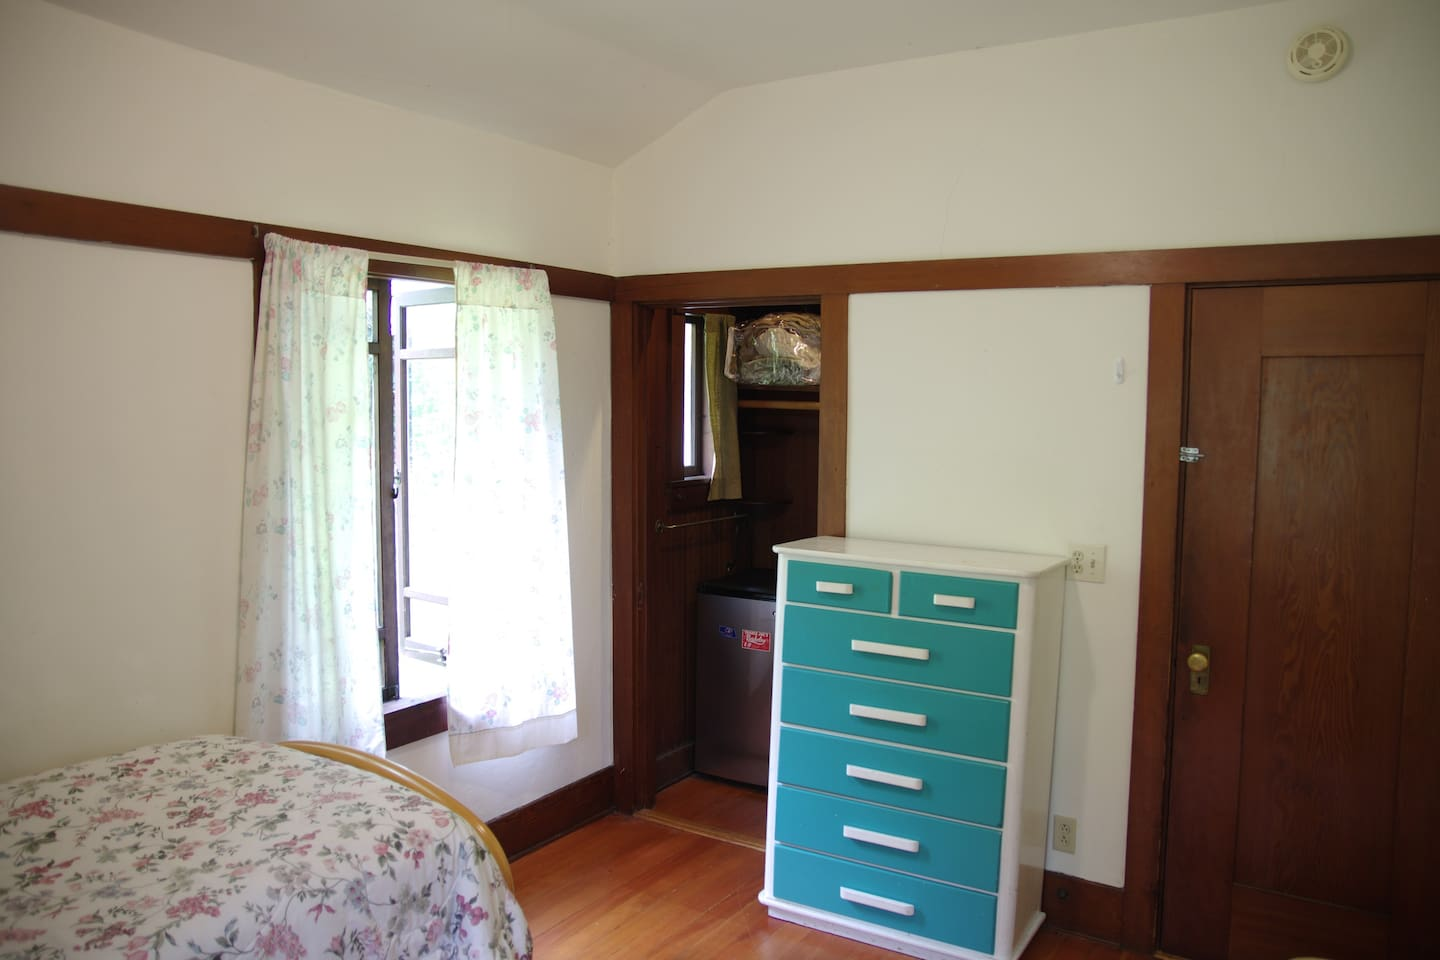 Private Room with Single Bed.  Additional Floor Mattress Available.